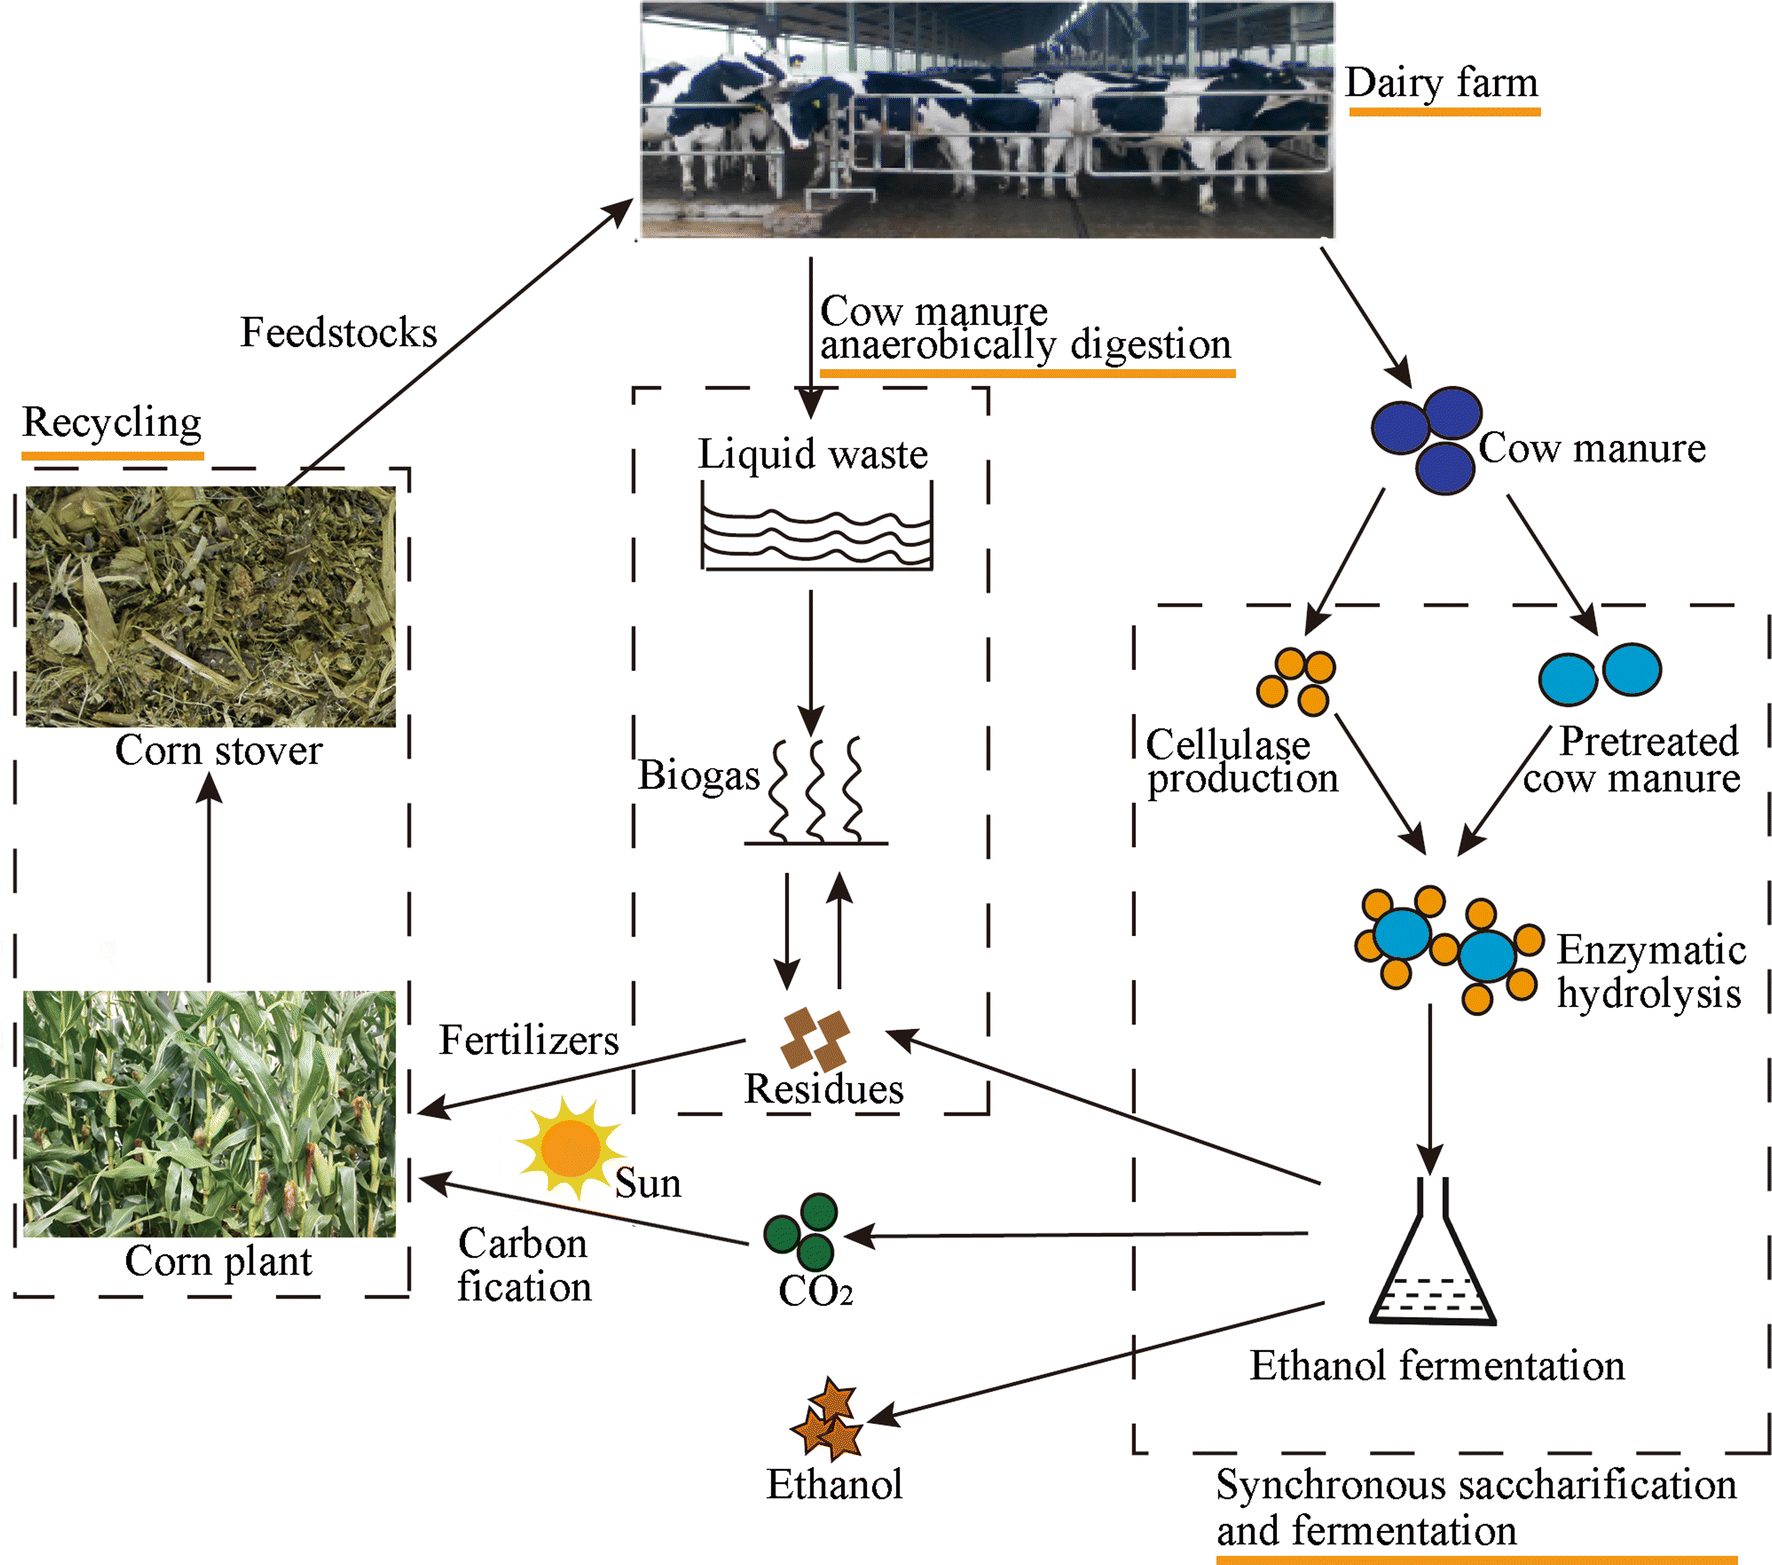 Cow manure as a lignocellulosic substrate for fungal